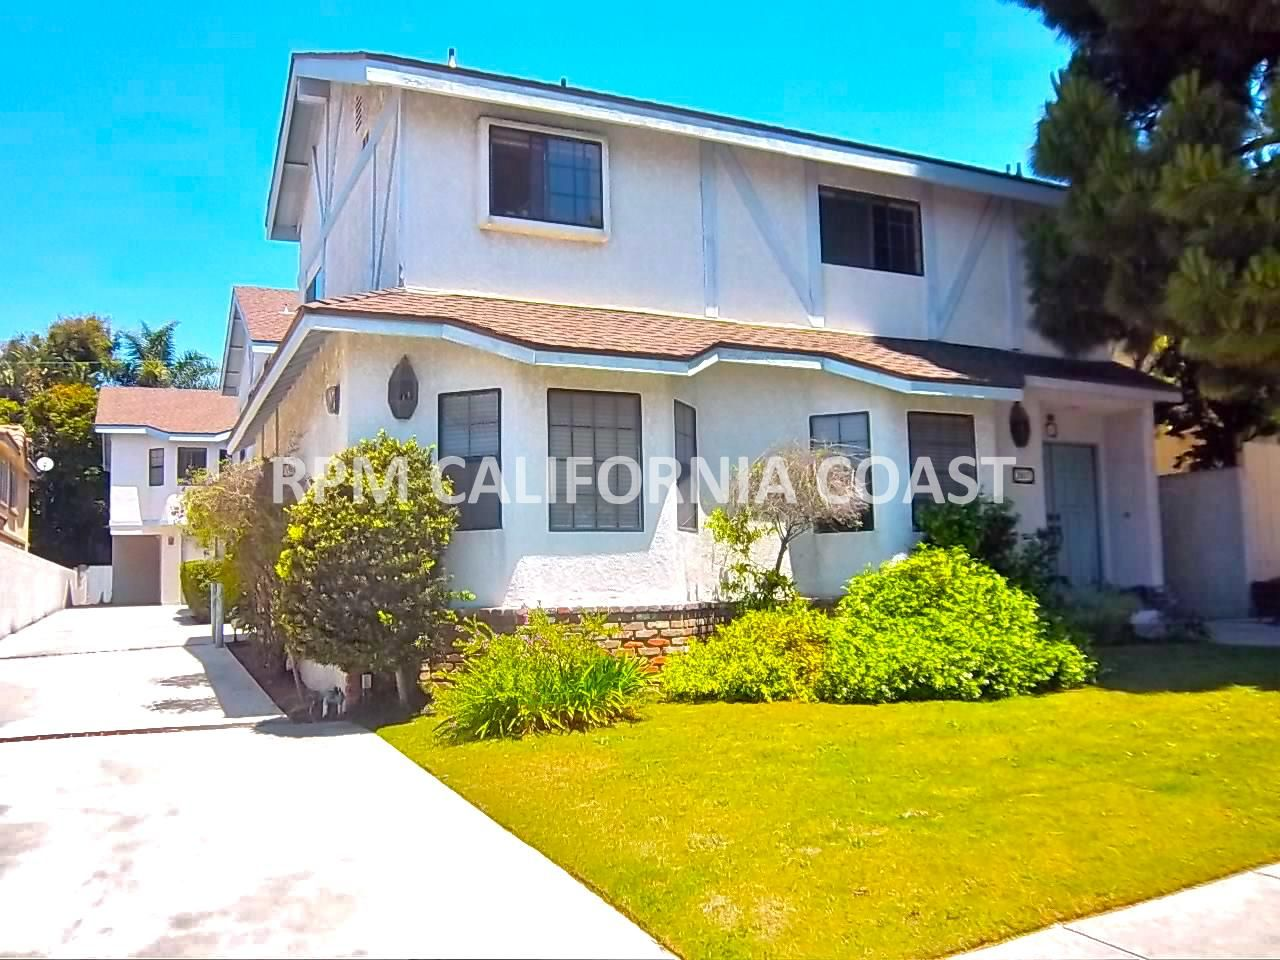 Redondo Beach Home, CA Real Estate Listing